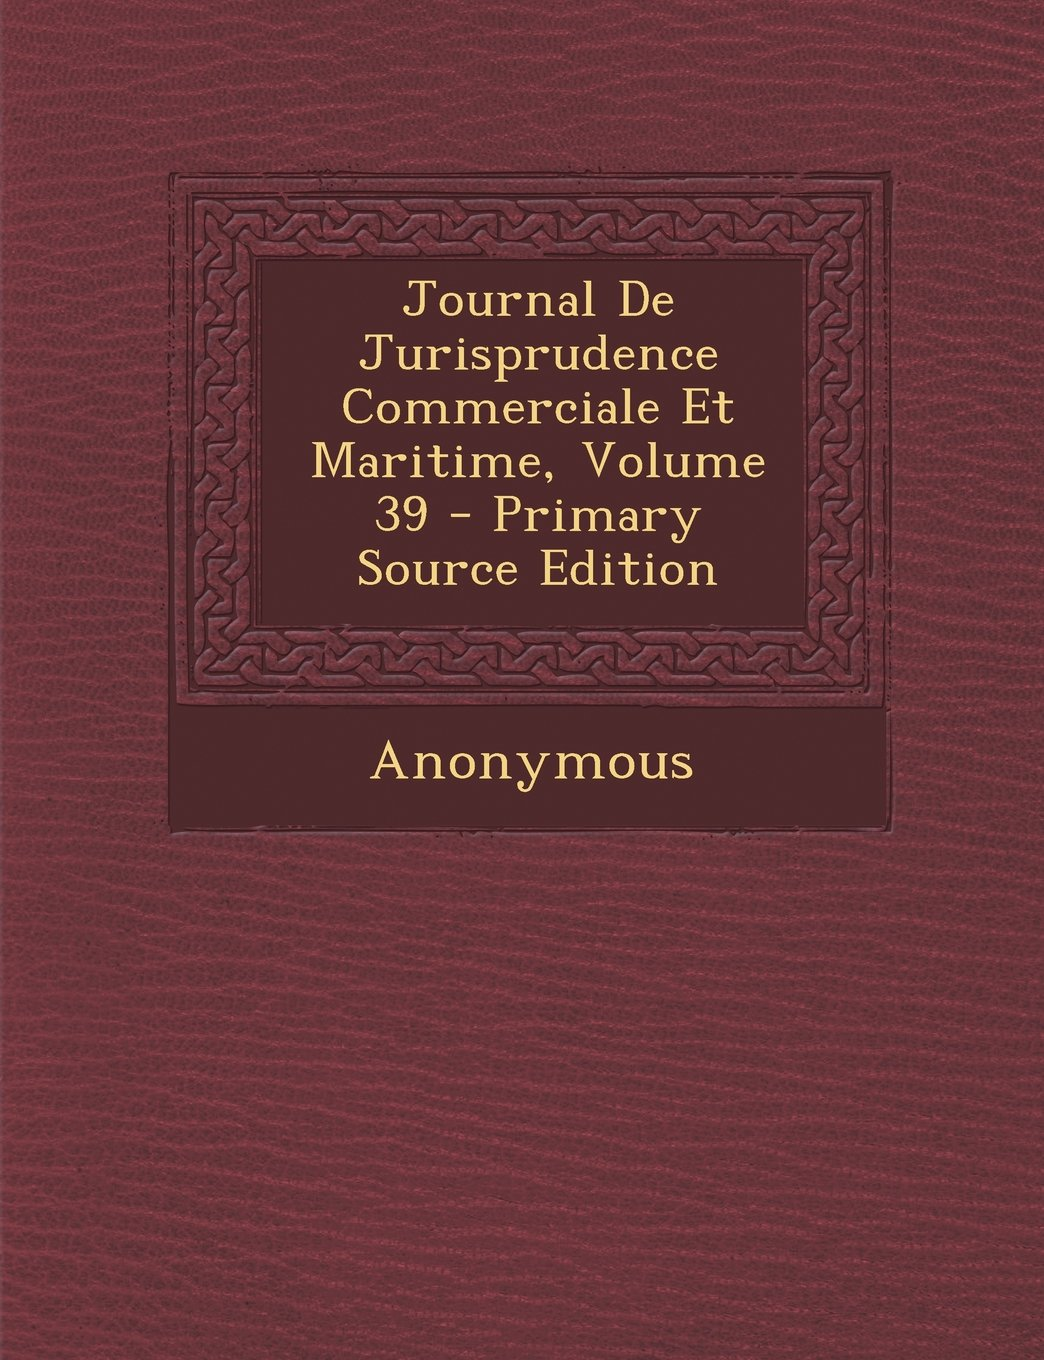 Journal De Jurisprudence Commerciale Et Maritime, Volume 39 - Primary Source Edition (French Edition) ebook